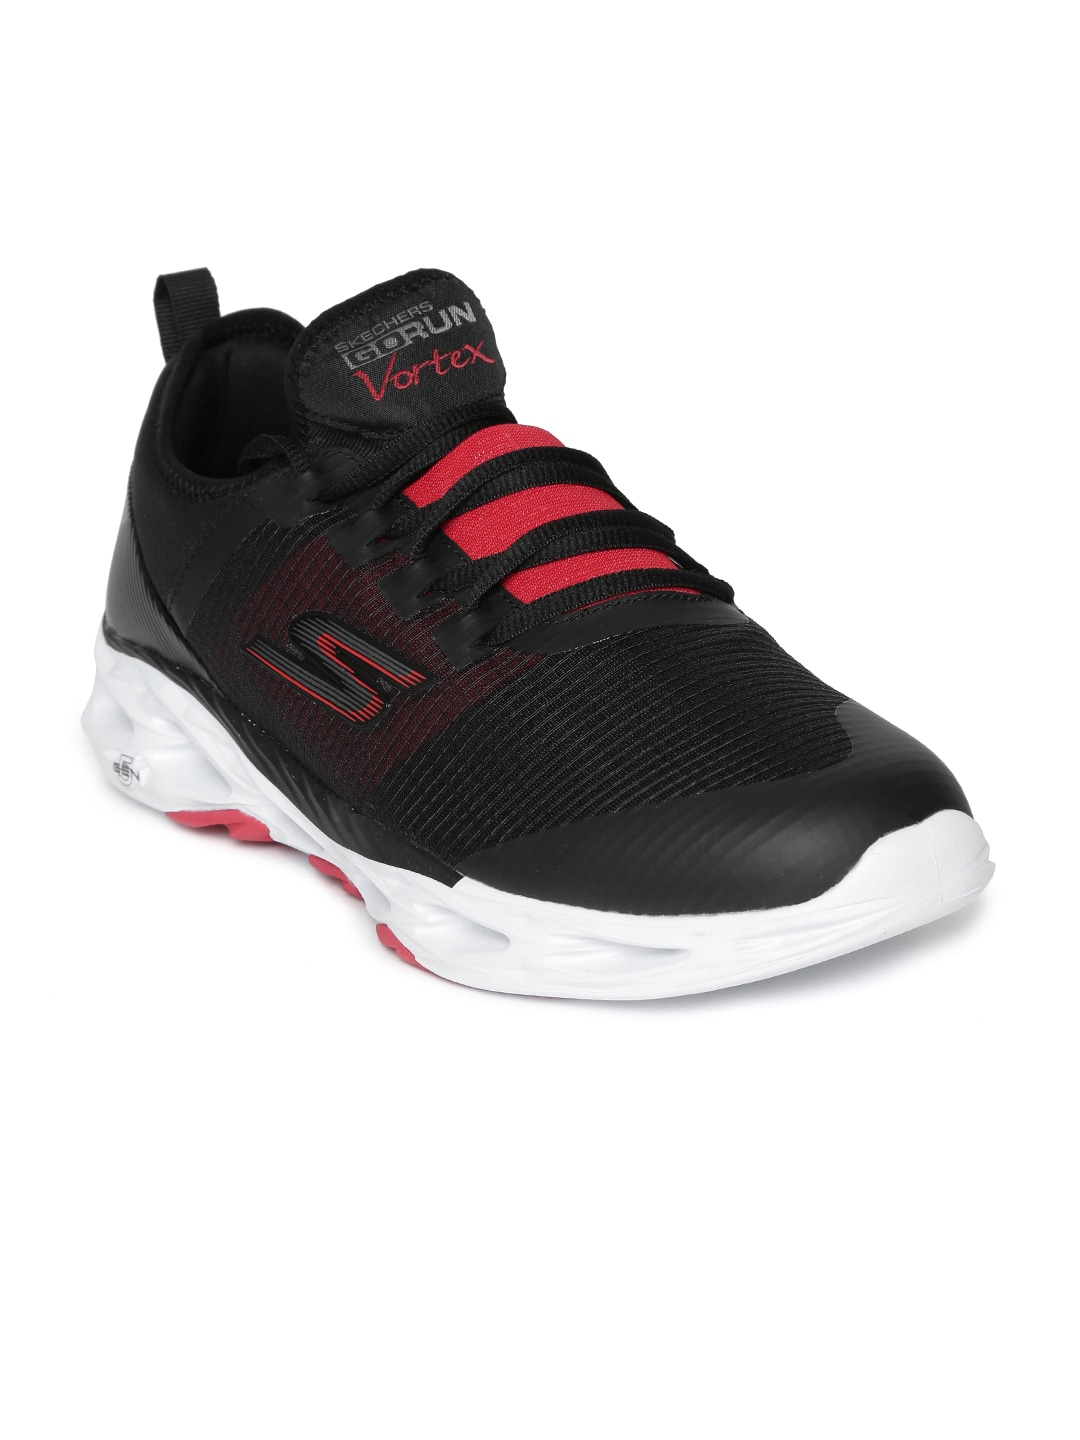 online store 3e36f 768a5 Men In Black Sports Shoes Casual - Buy Men In Black Sports Shoes Casual  online in India